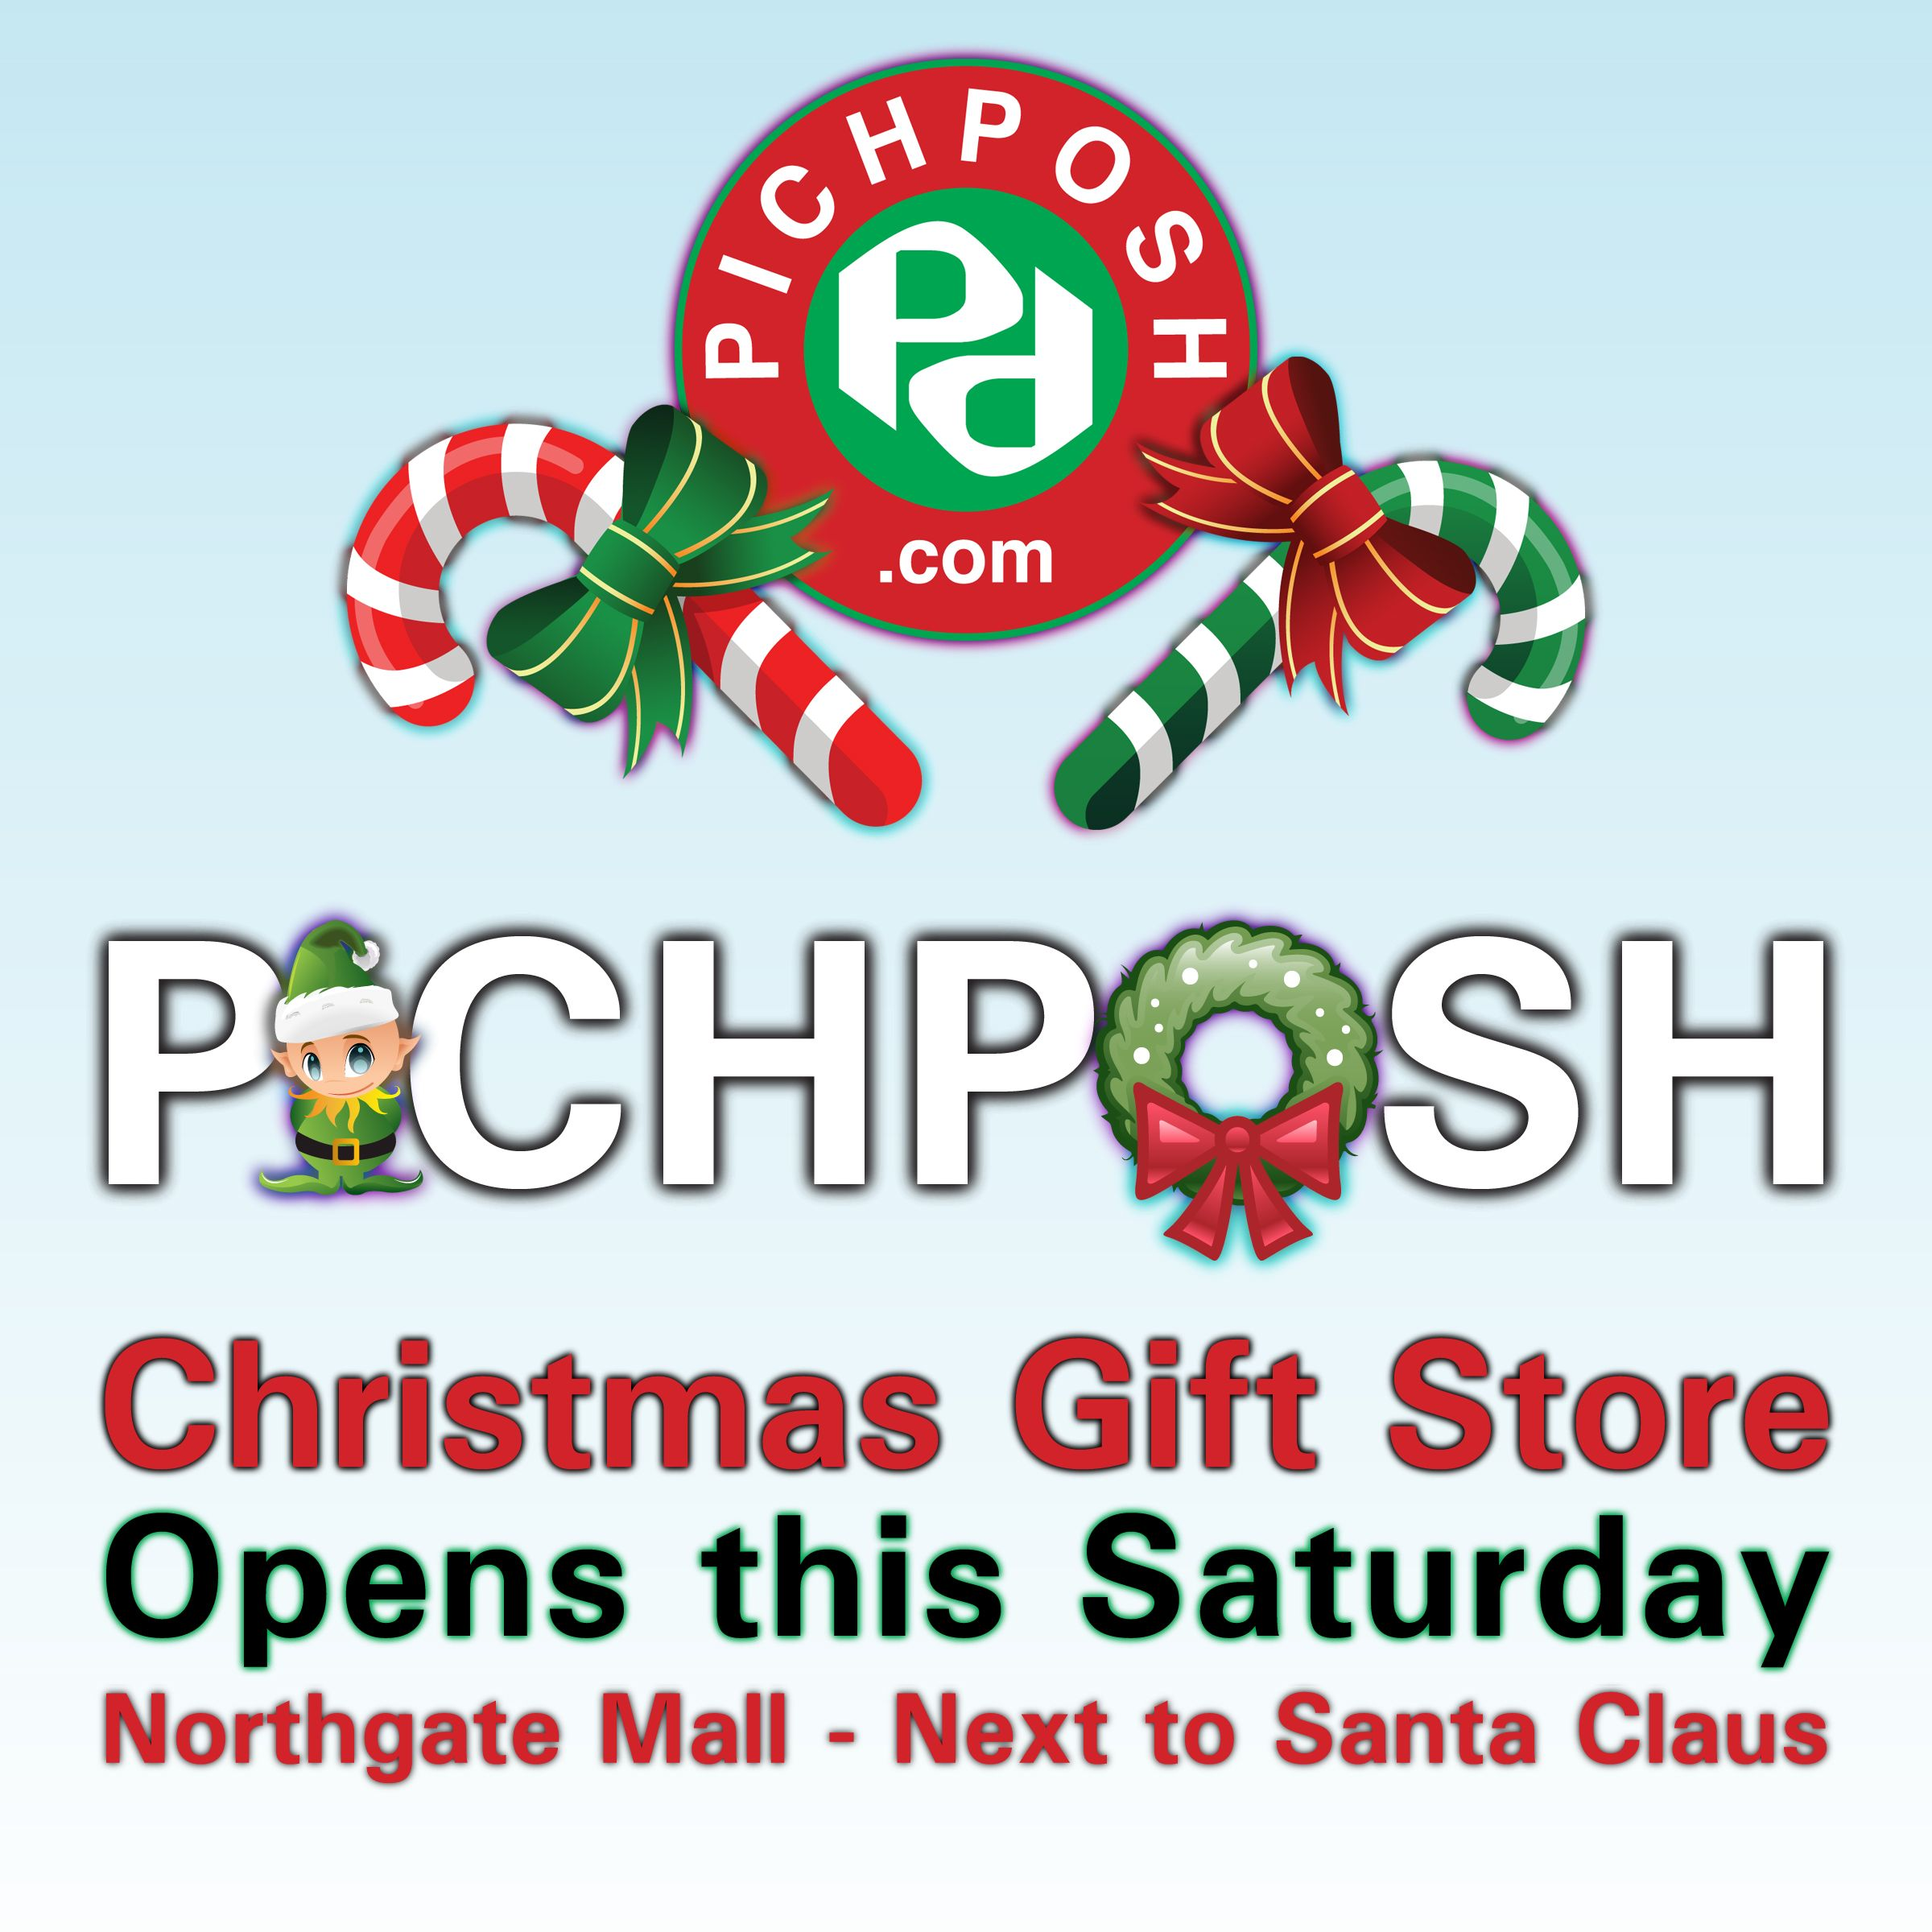 PICHPOSH  Christmas Gift Store Opens this Saturday at the Northgate Mall.   ★★★New Location★★★ Next to Santa Claus. Have a Canadian Christmas and give PICHPOSH -  Handmade in Canada  High Quality Bath & Body Products. Come visit us, we open Saturday November 29 - Northgate Mall Regina Saskatchewan  -  Visit PICHPOSH.com  #bathbomb #bathbombs #fun #gift #gifts #christmas #festive #bathandbody #cool #design #graphicdesign #artistic  #shopping #regina #sasktechewan #shopcanada #pichposh